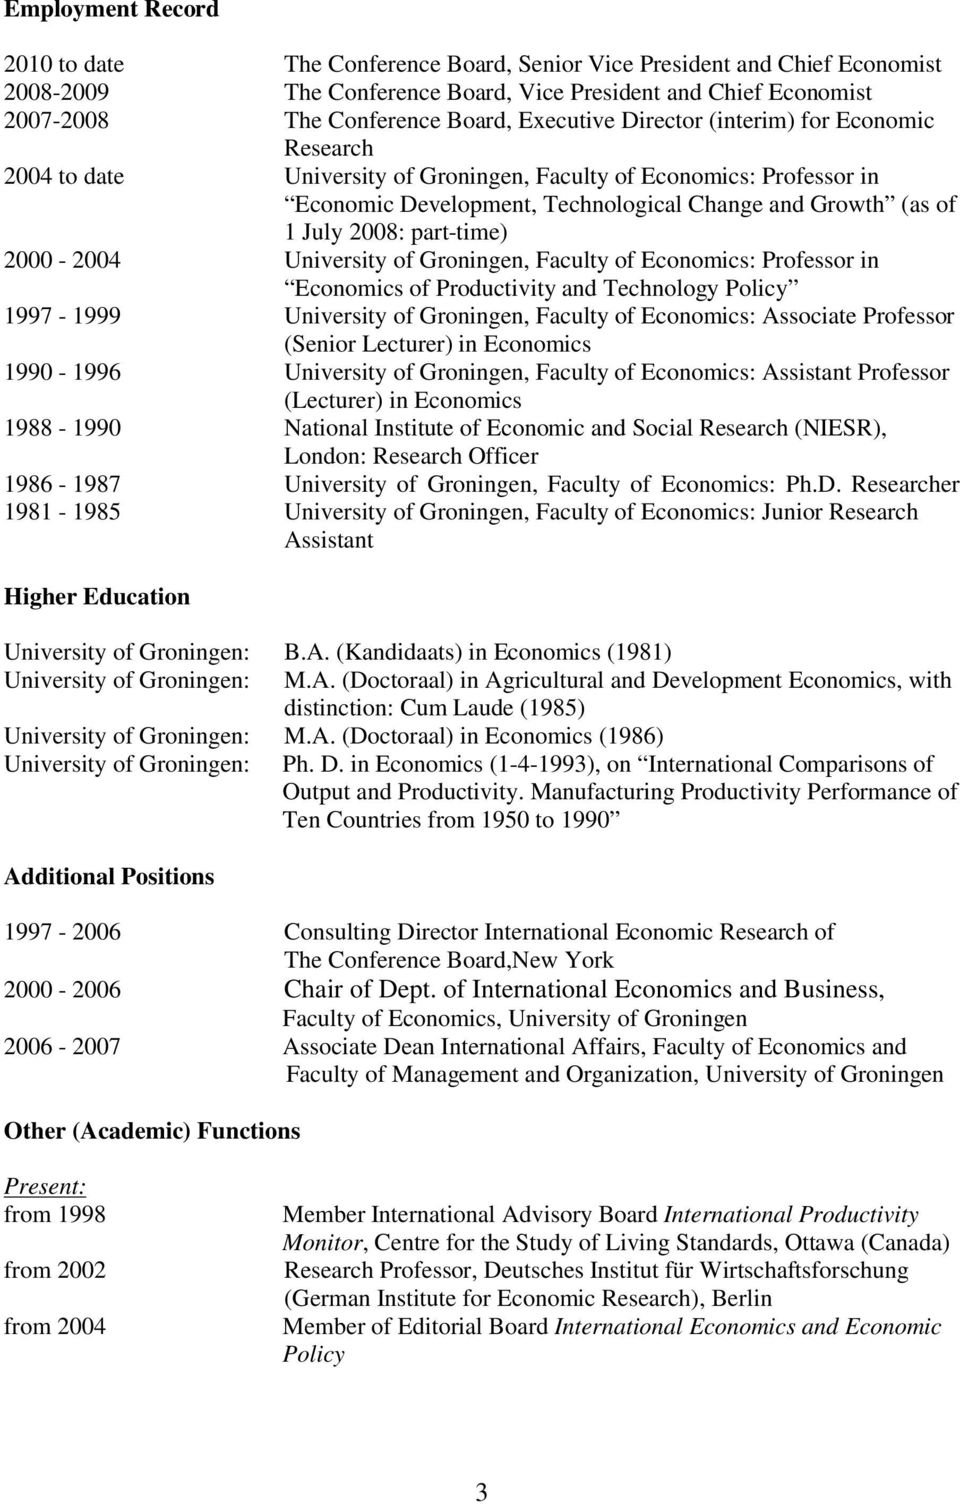 part-time) 2000-2004 University of Groningen, Faculty of Economics: Professor in Economics of Productivity and Technology Policy 1997-1999 University of Groningen, Faculty of Economics: Associate